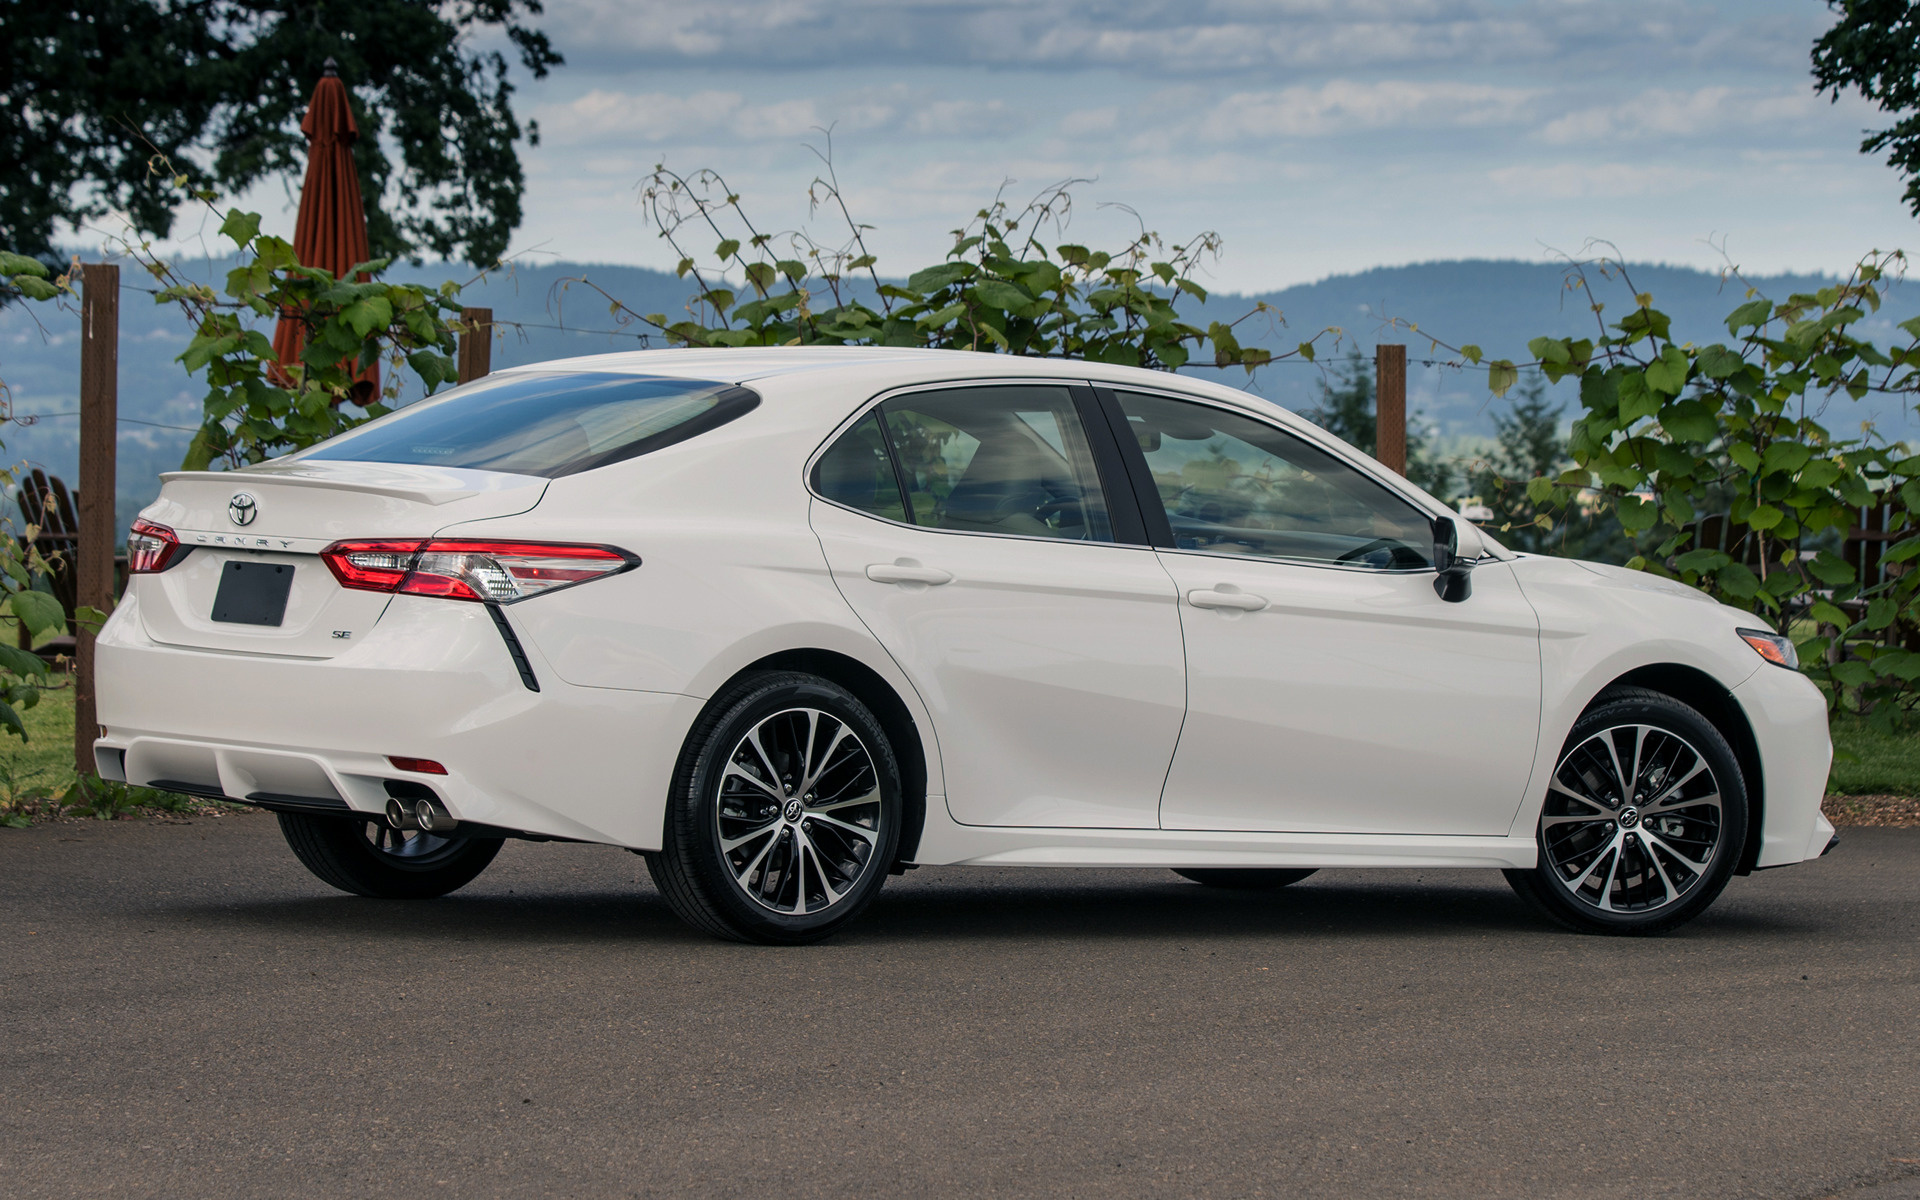 2018 Camry Le >> 2018 Toyota Camry SE - Wallpapers and HD Images | Car Pixel